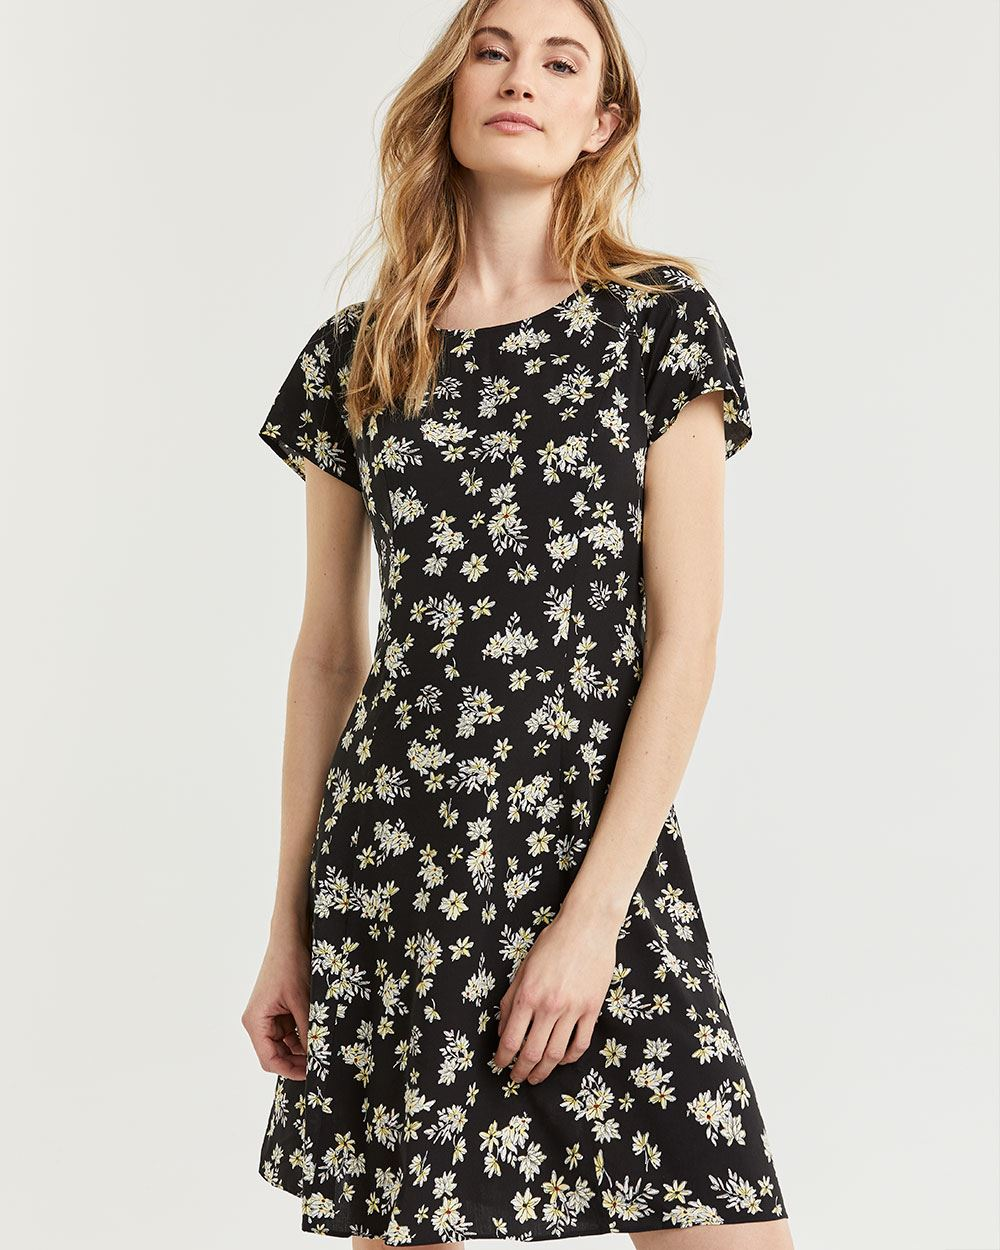 Printed Swing Dress with Lace-Up Back